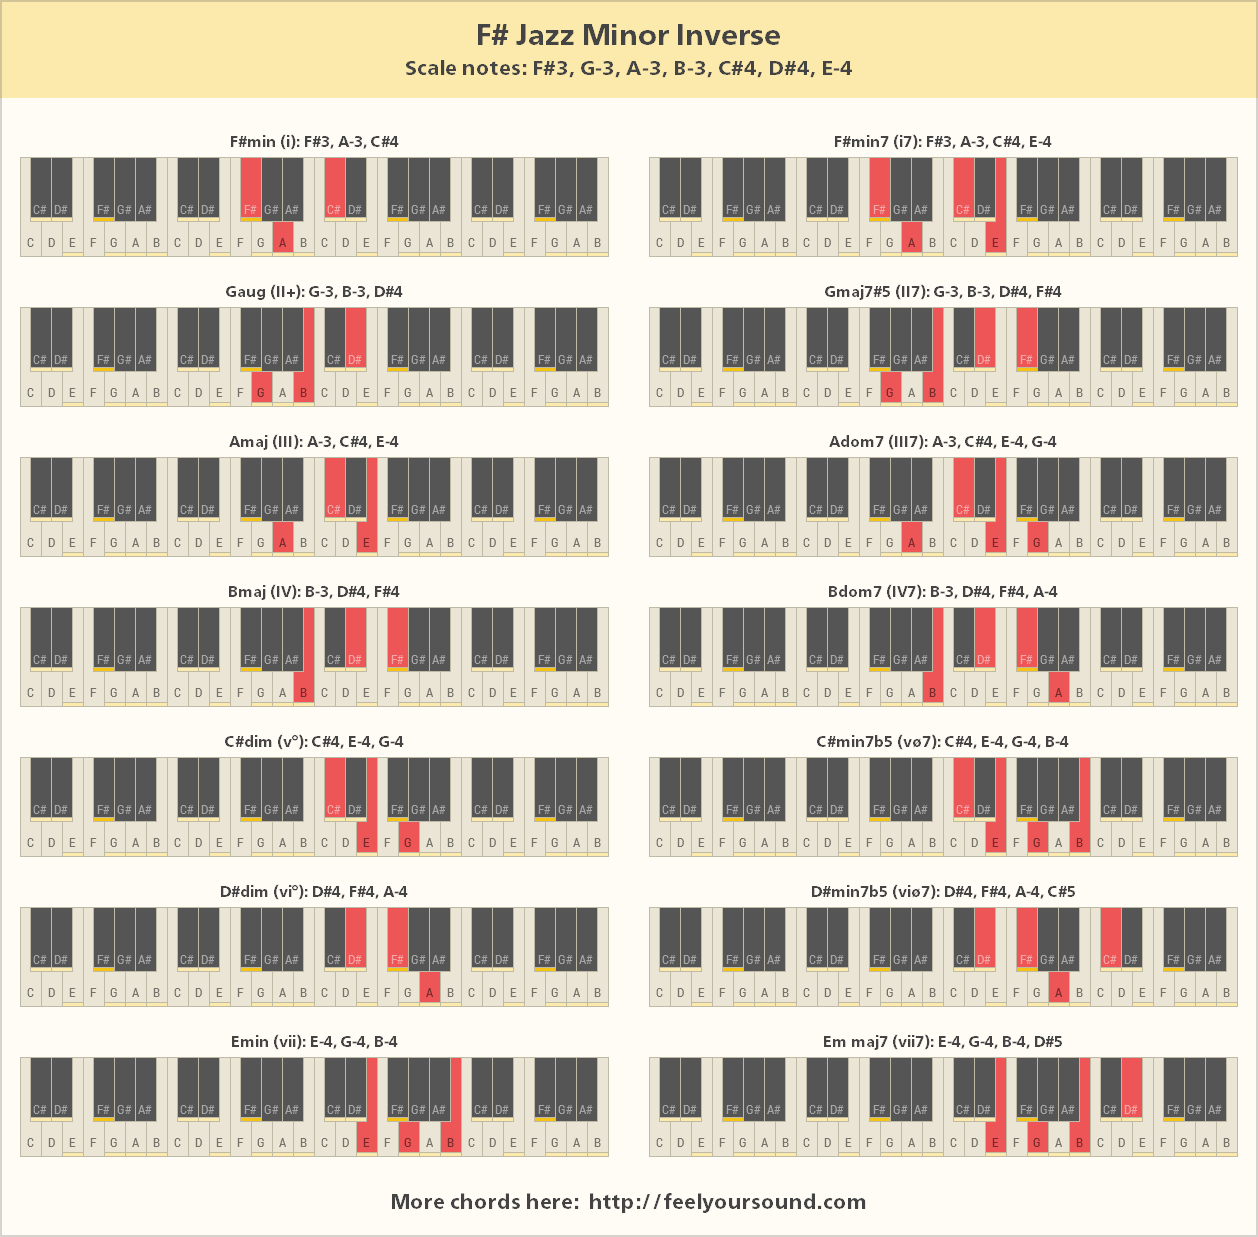 F# Piano Chord Chords And Scale Notes Of F Jazz Minor Inverse